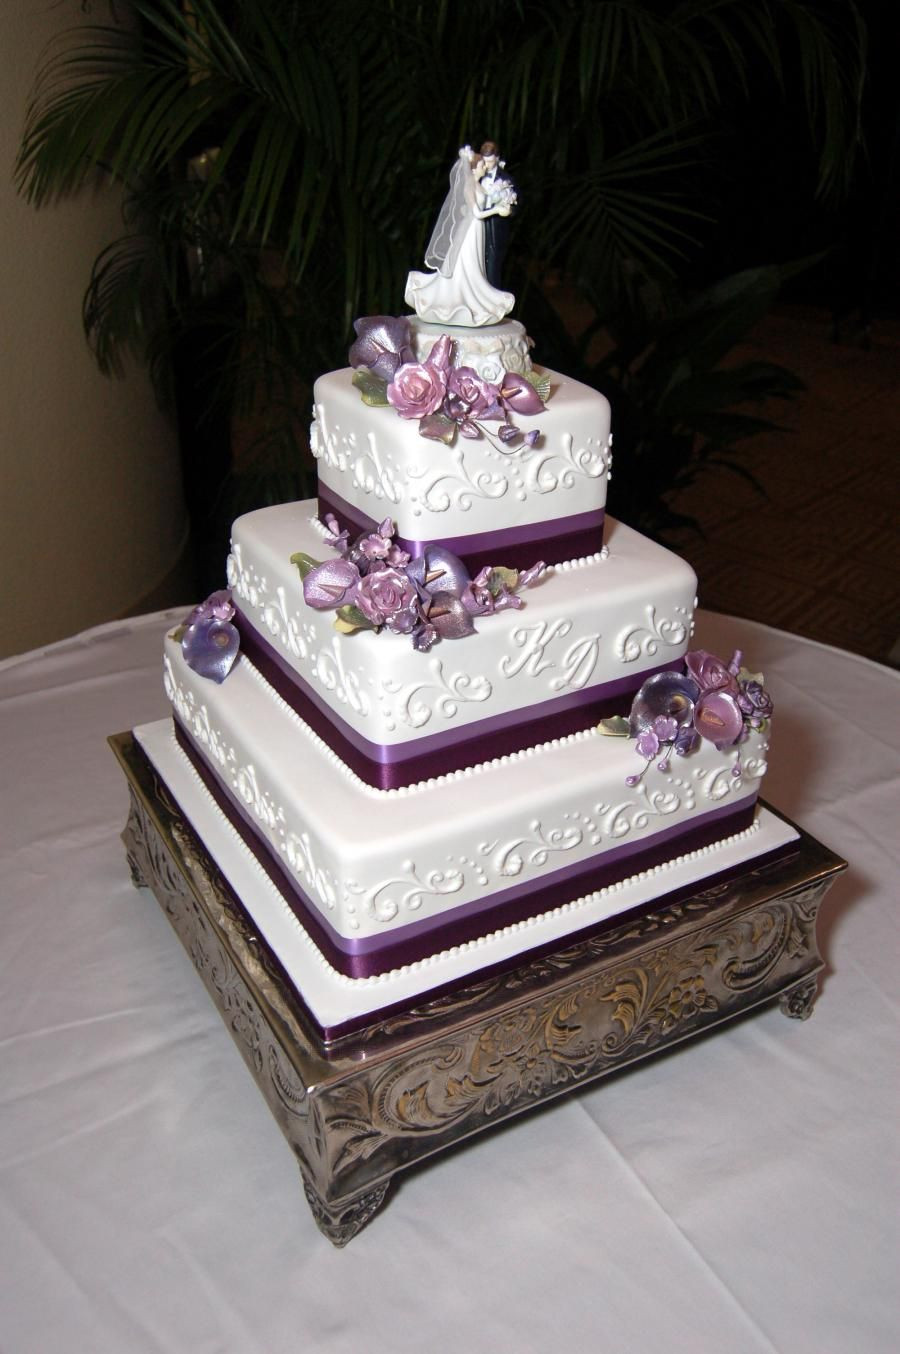 3 Tiered Square Wedding Cakes  This 3 tier square wedding cake is simple and elegant